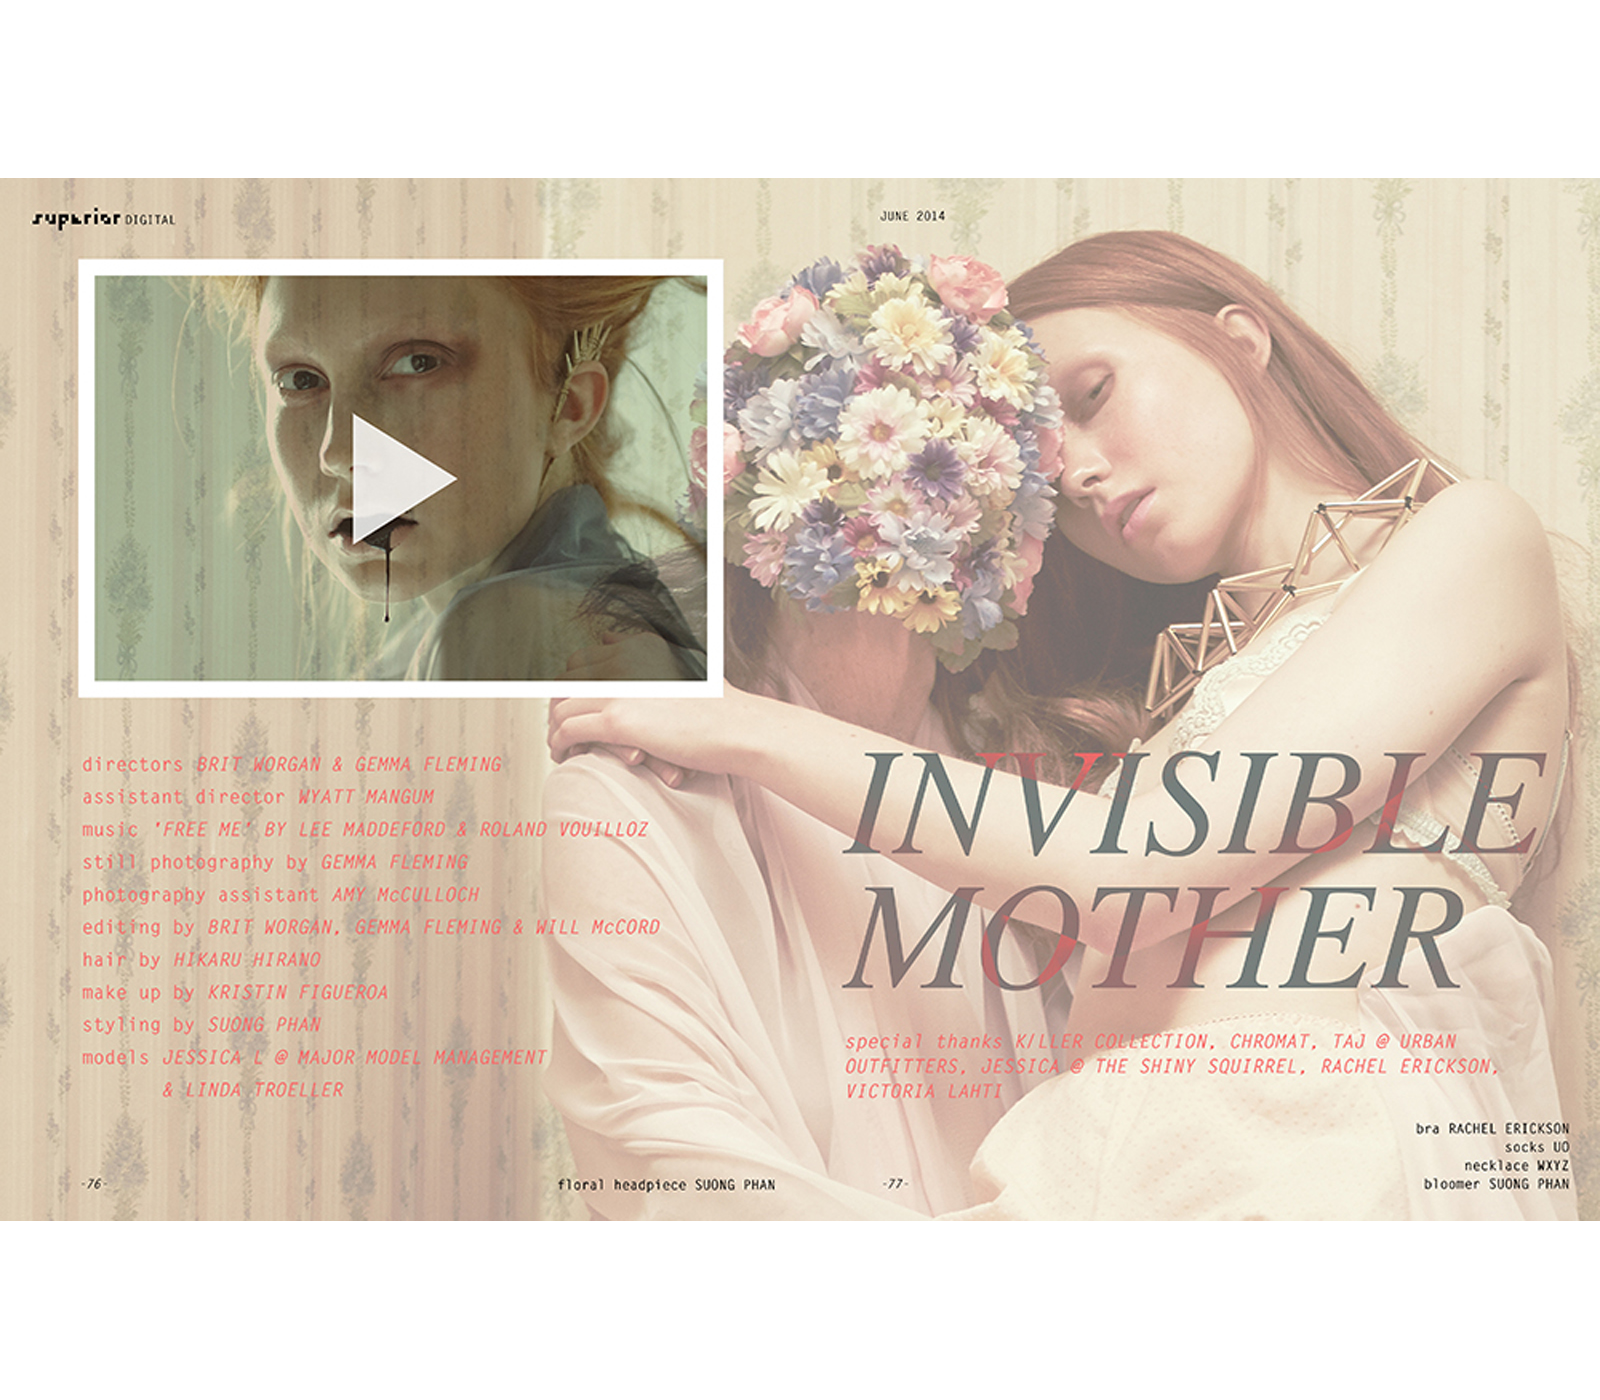 SUPERIOR_june_INVISIBLE_MOTHER copy.png